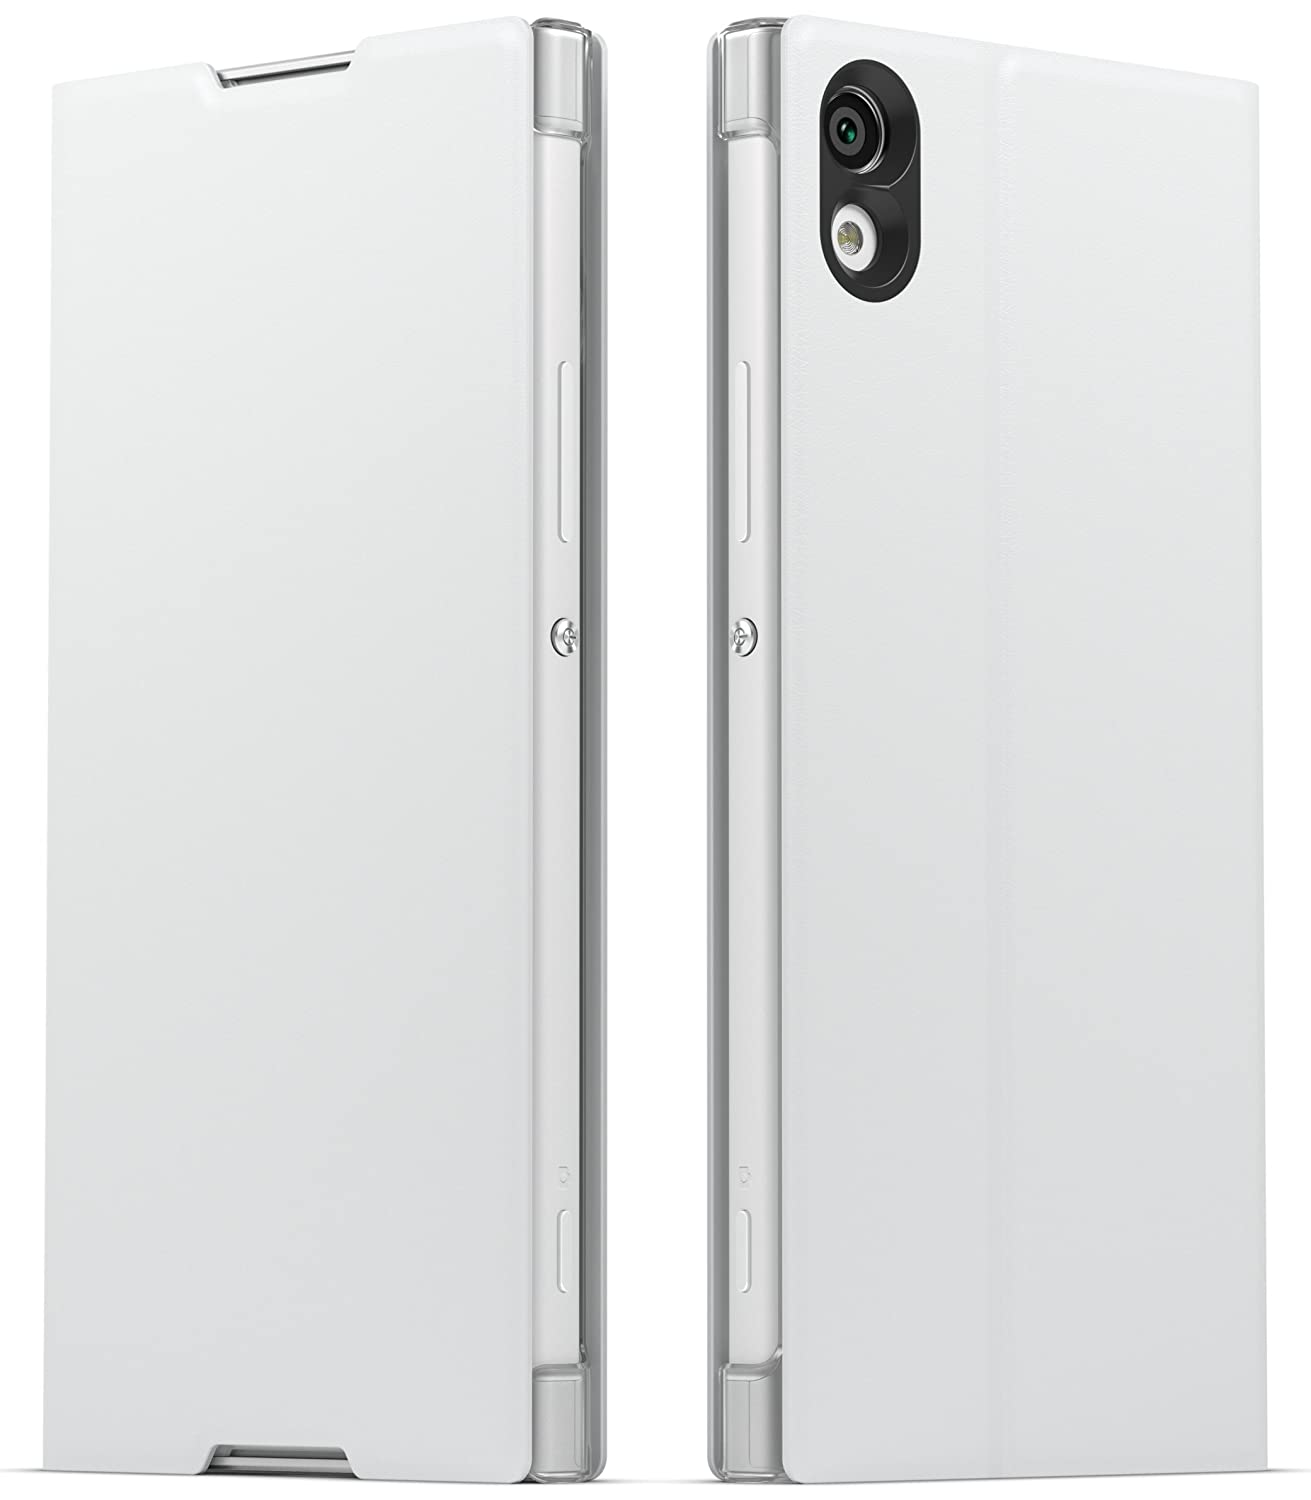 reputable site af4b3 bf2bb Sony Style Cover with Stand for Xperia XA1 - White